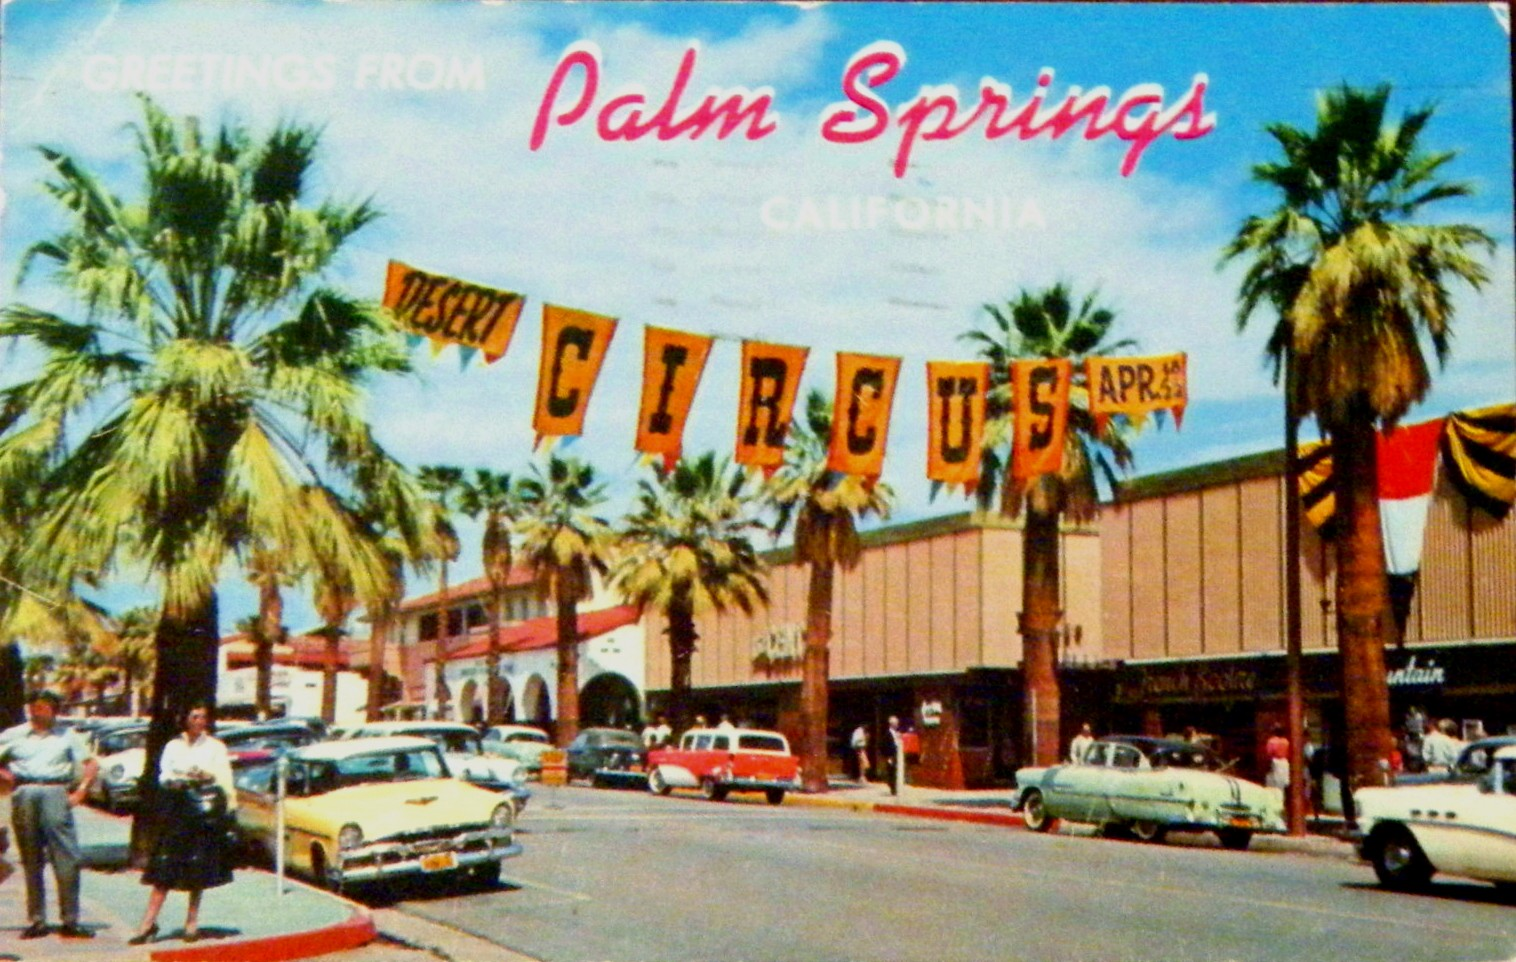 Greetings_from_Palm_Springs_-_Palm_Canyon_Drive_postcard_(1950s).jpg